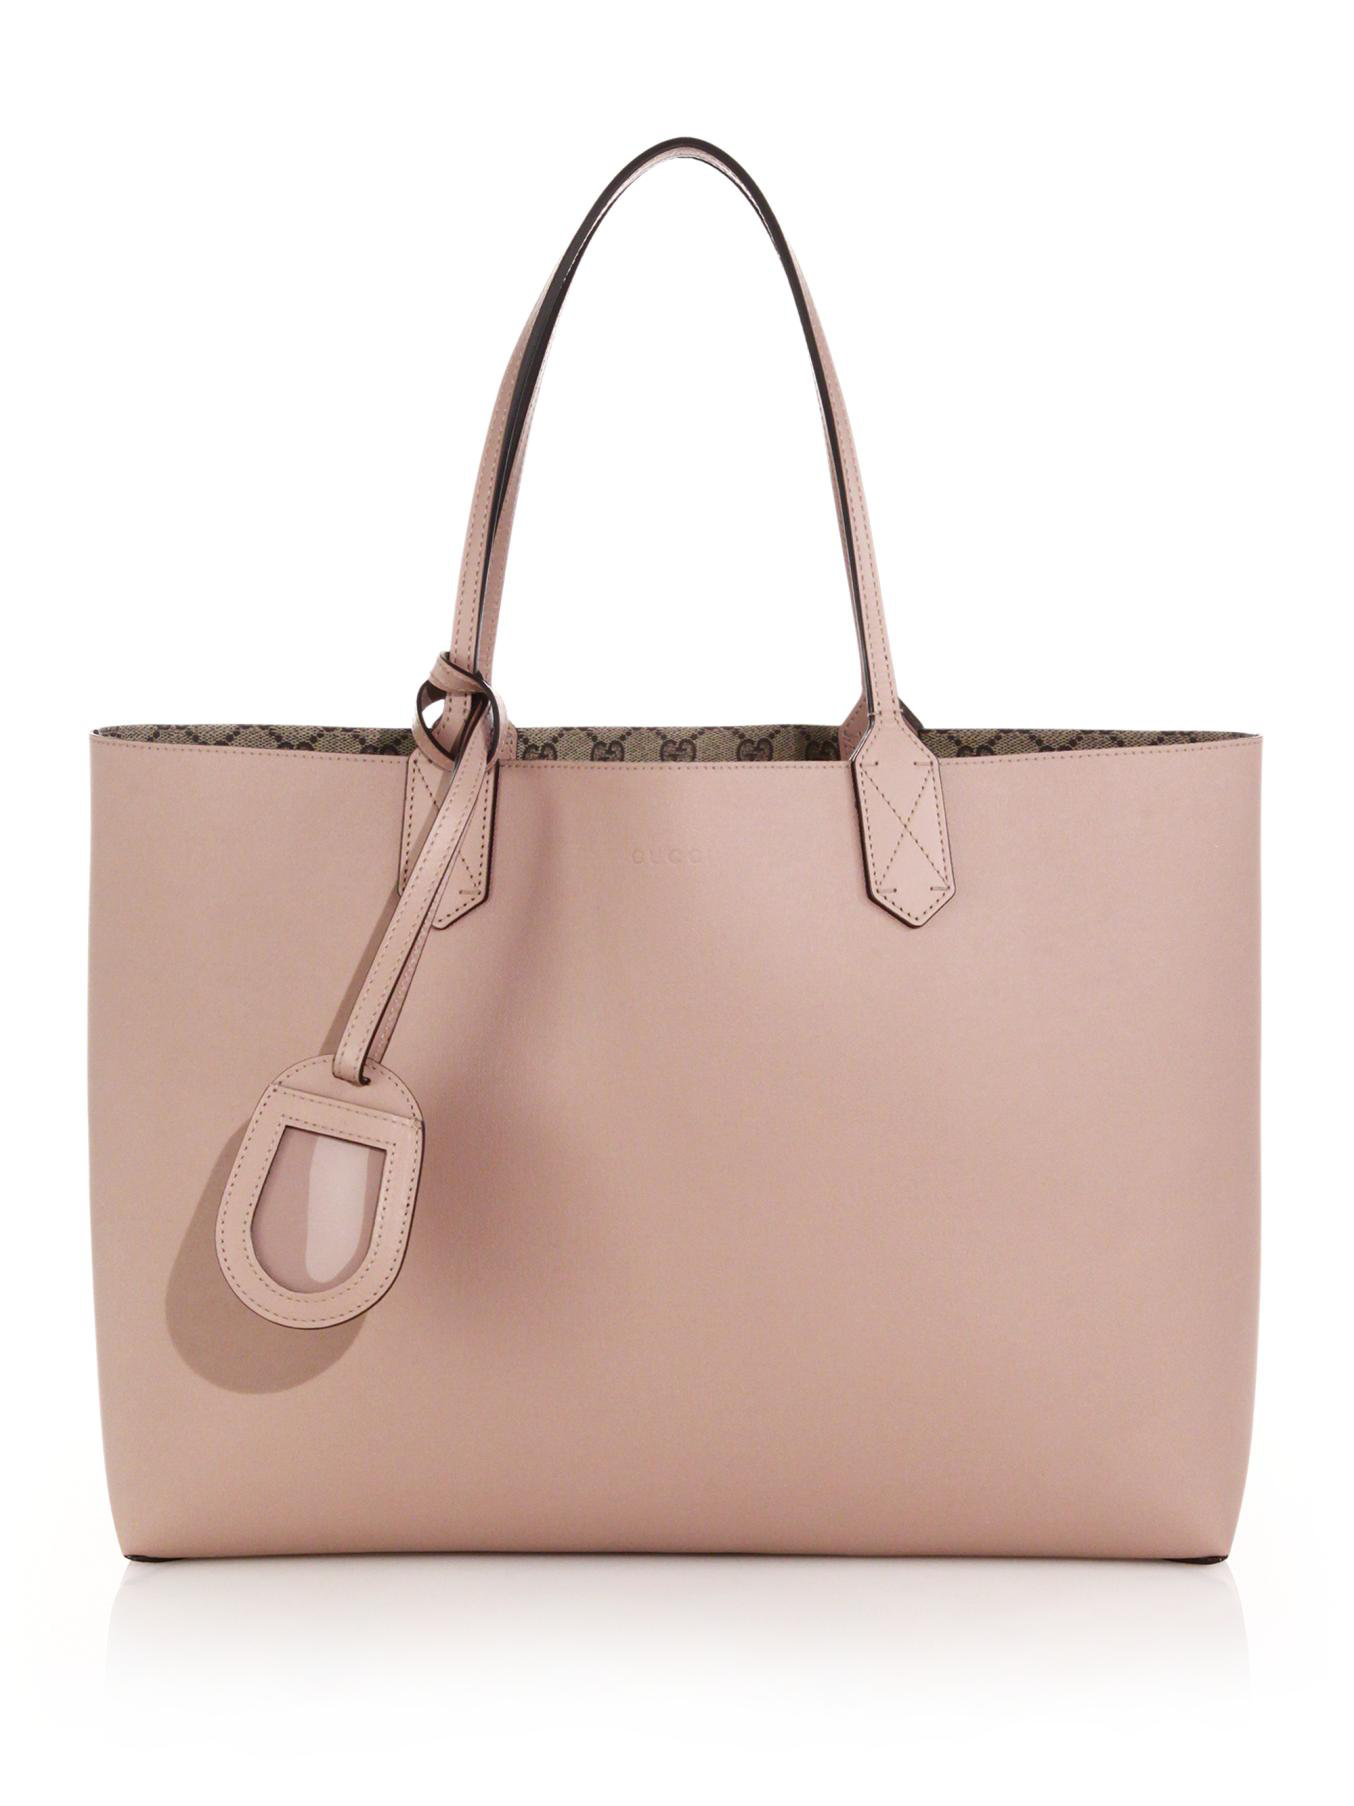 805220964670 Gucci GG Reversible Medium Leather Tote in Pink - Lyst